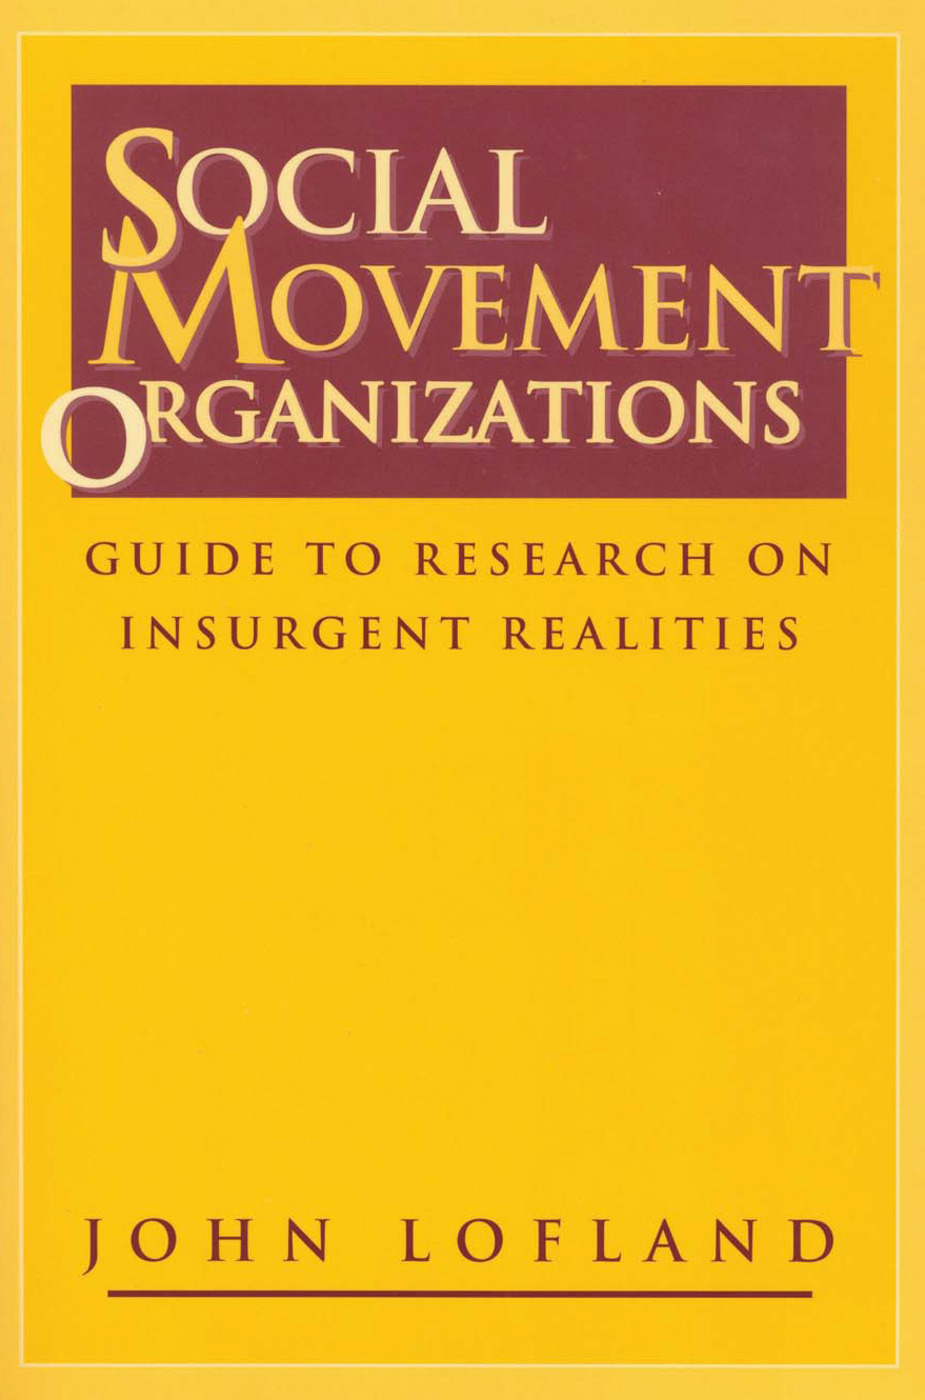 Social Movement Organizations: Guide to Research on Insurgent Realities, 1st Edition (Paperback) book cover